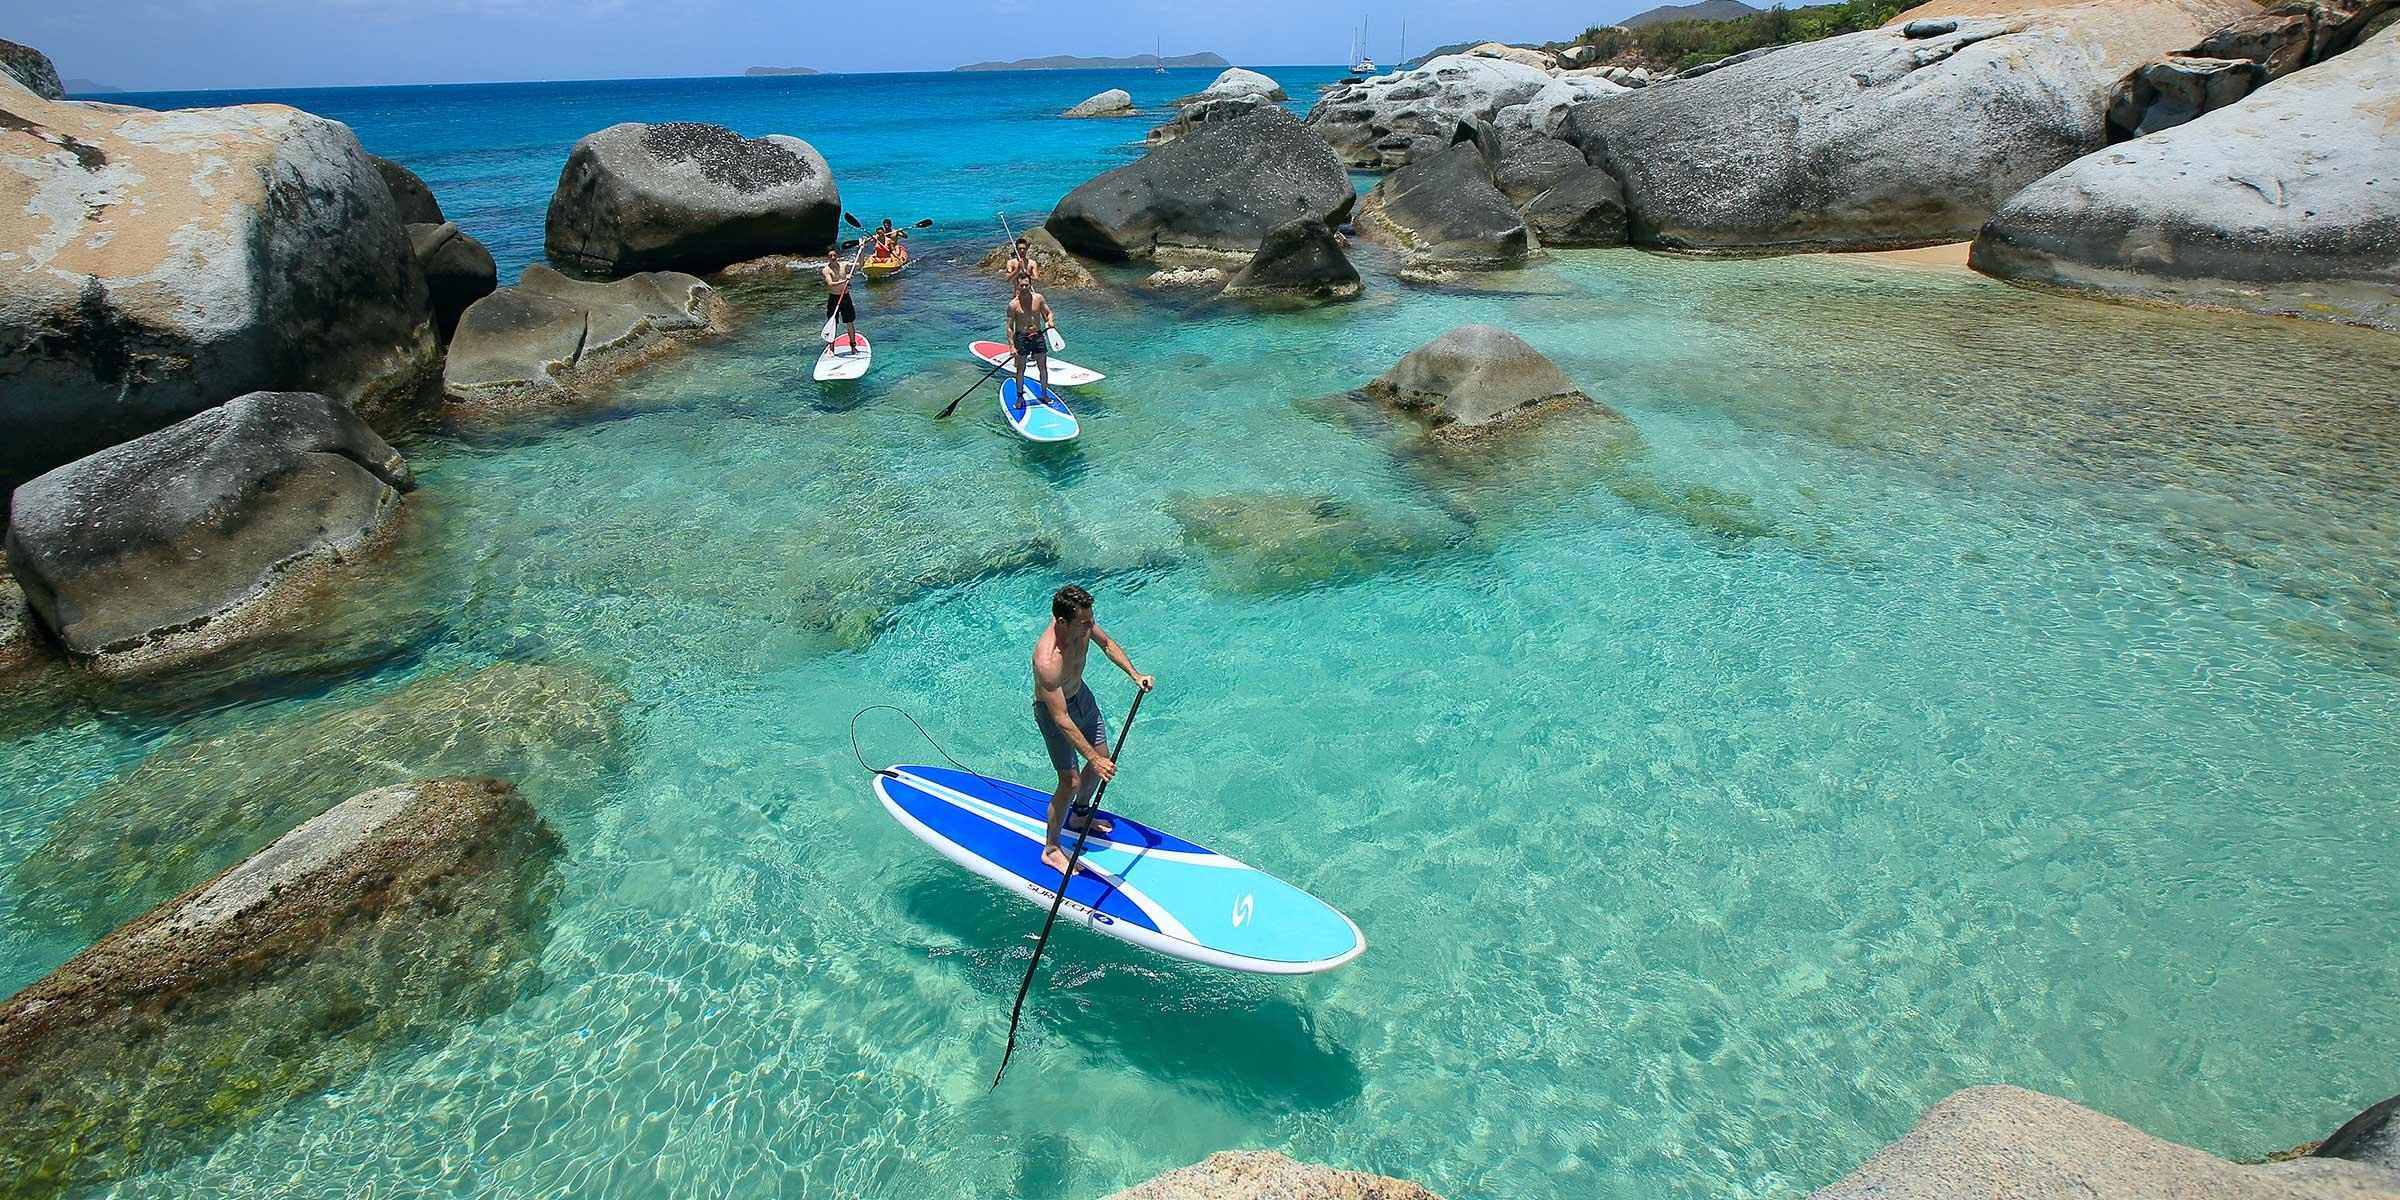 people-stand-up-paddling-kayaking-bvi-2400x1200-web.jpg?t=1II1gD&itok=aPPT2wWg